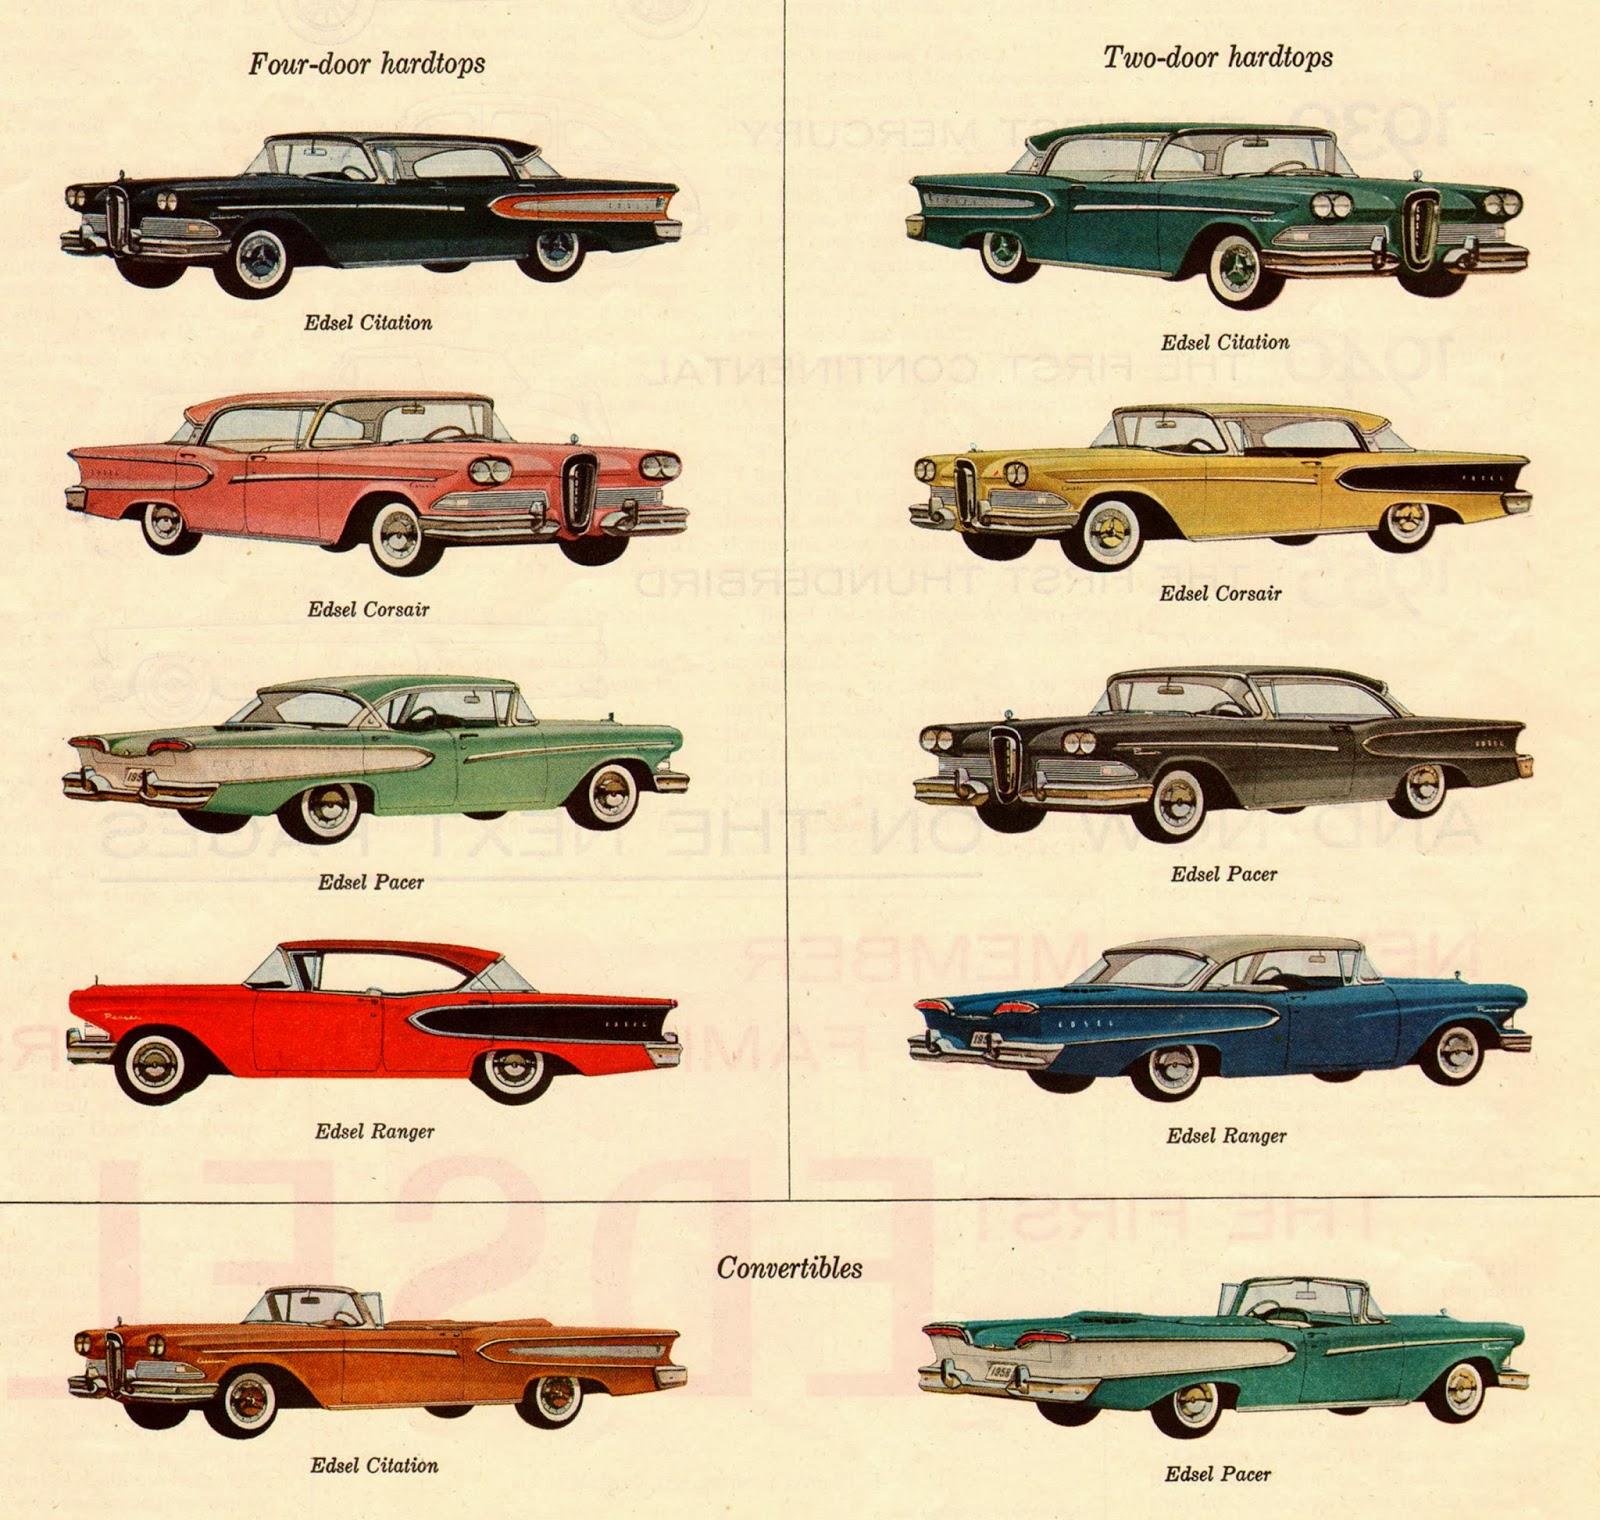 Yesterday Today: Ford Edsel 1958 Car Models: The Wrong Car